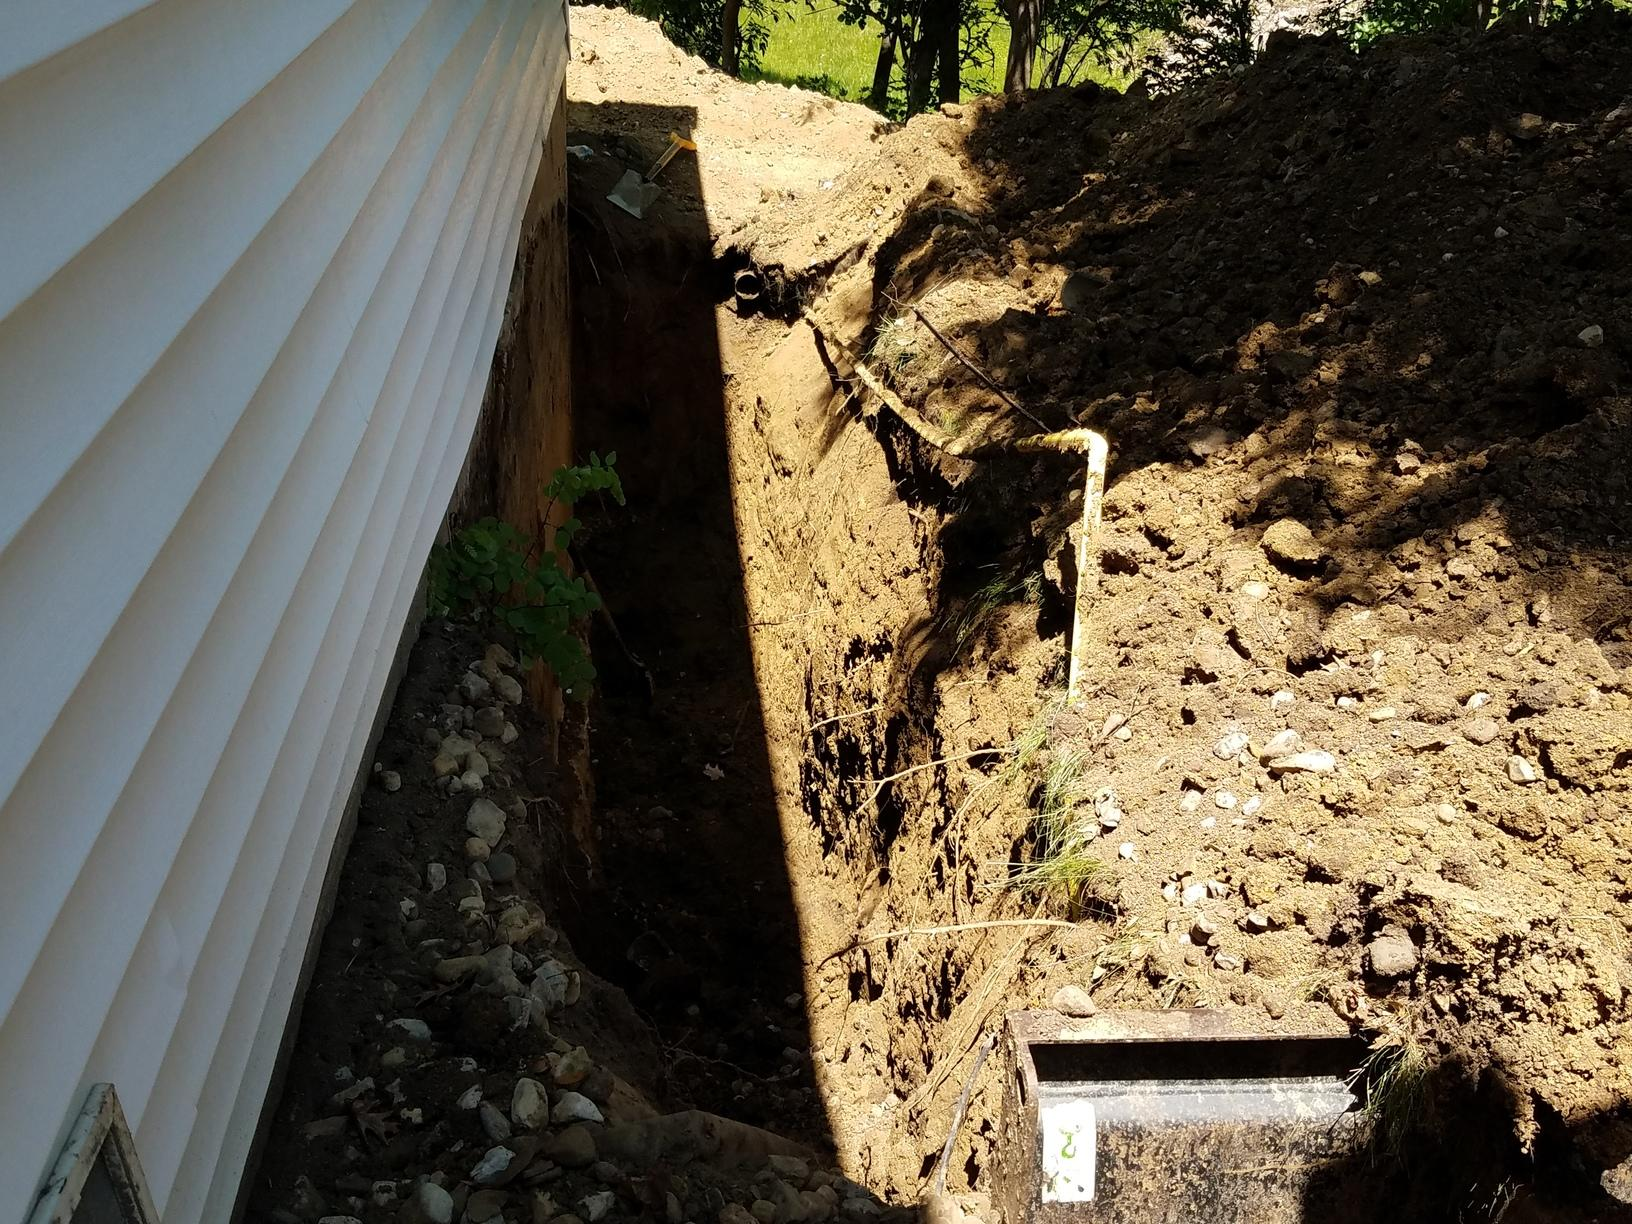 The foundation system being installed.